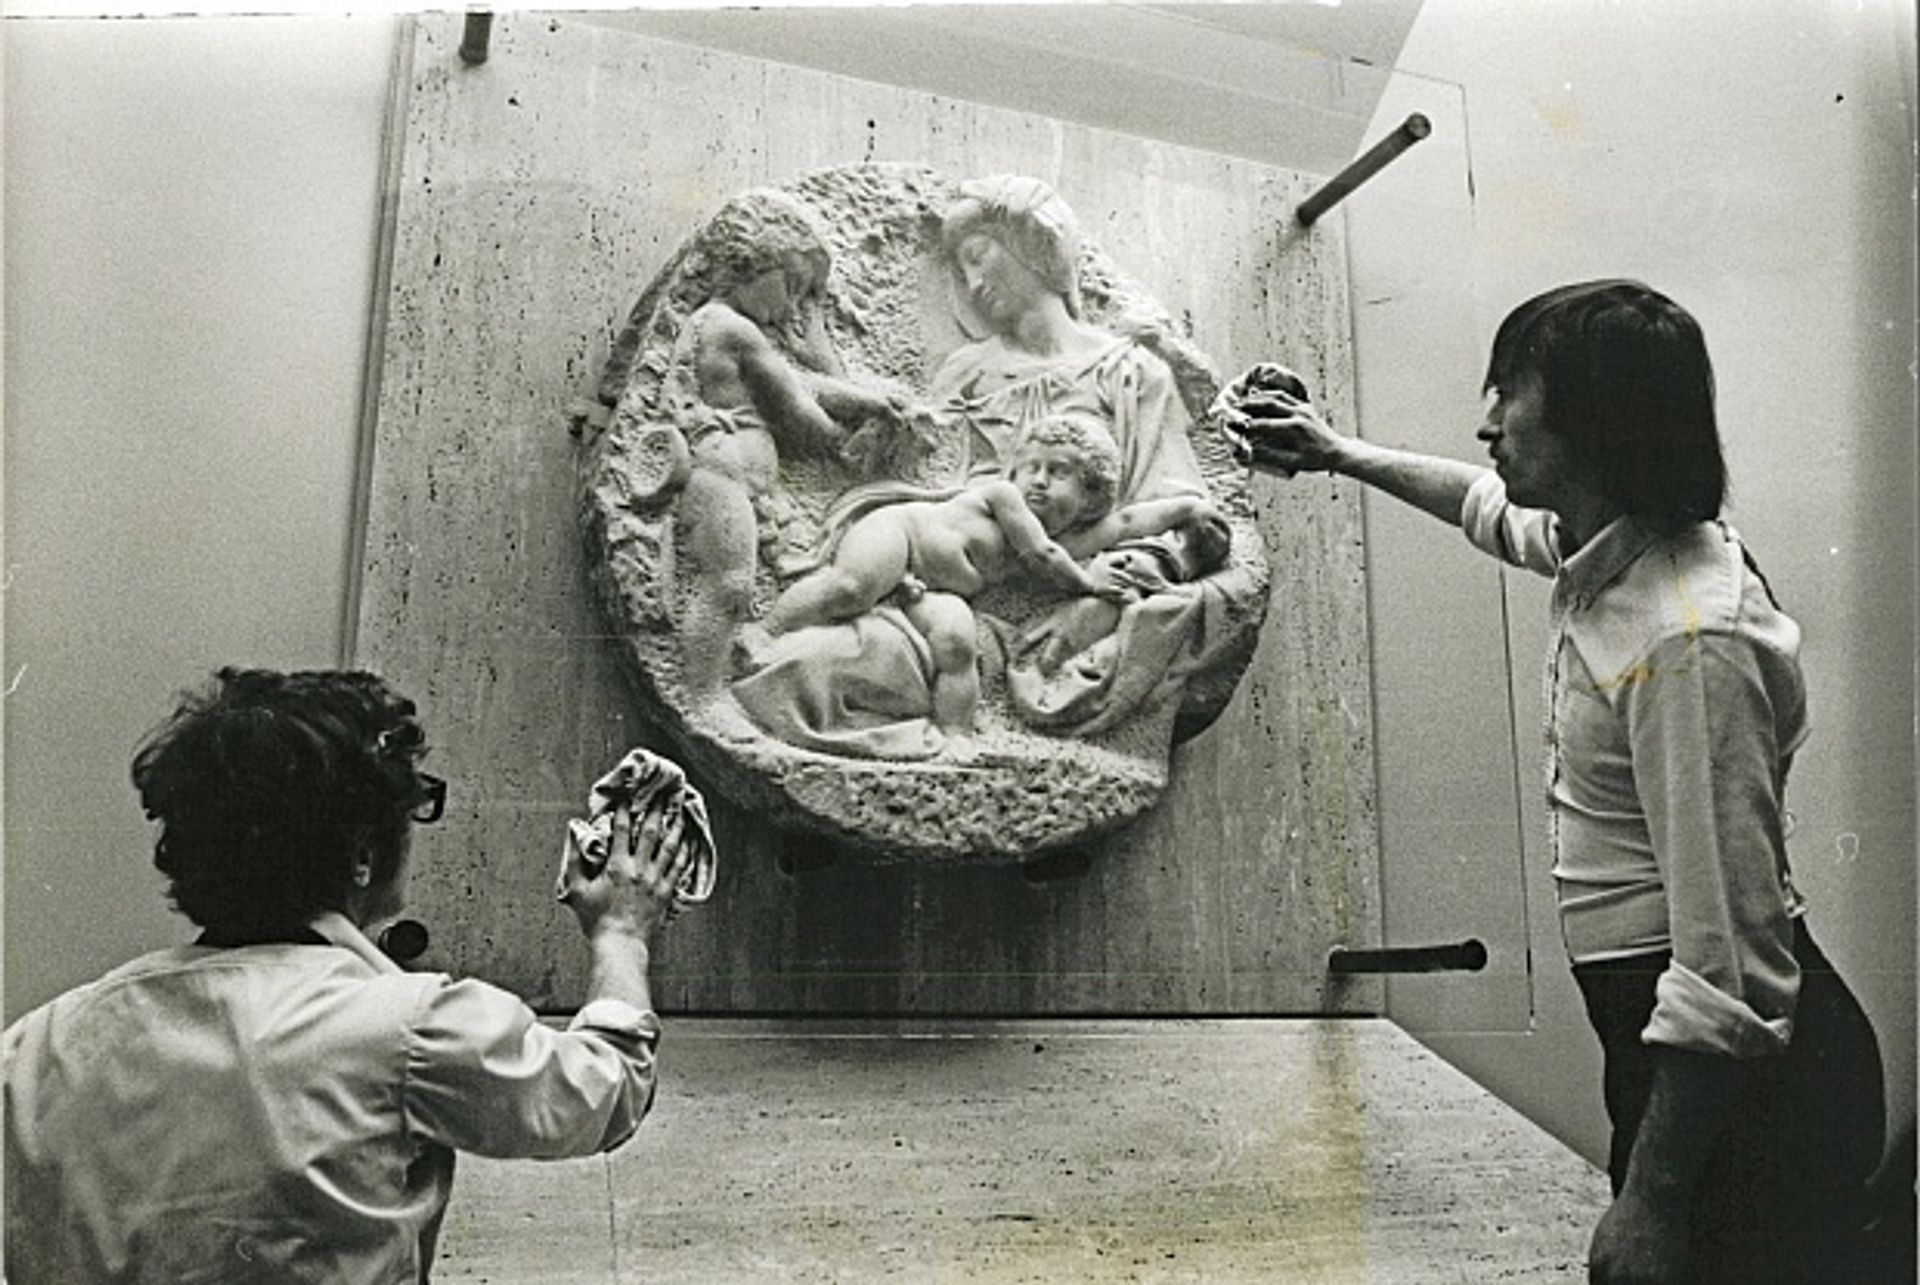 Michelangelo's Taddei Tondo at the Royal Academy in the 1970s Photo: Keystone Pictures USA / Alamy Stock Photo